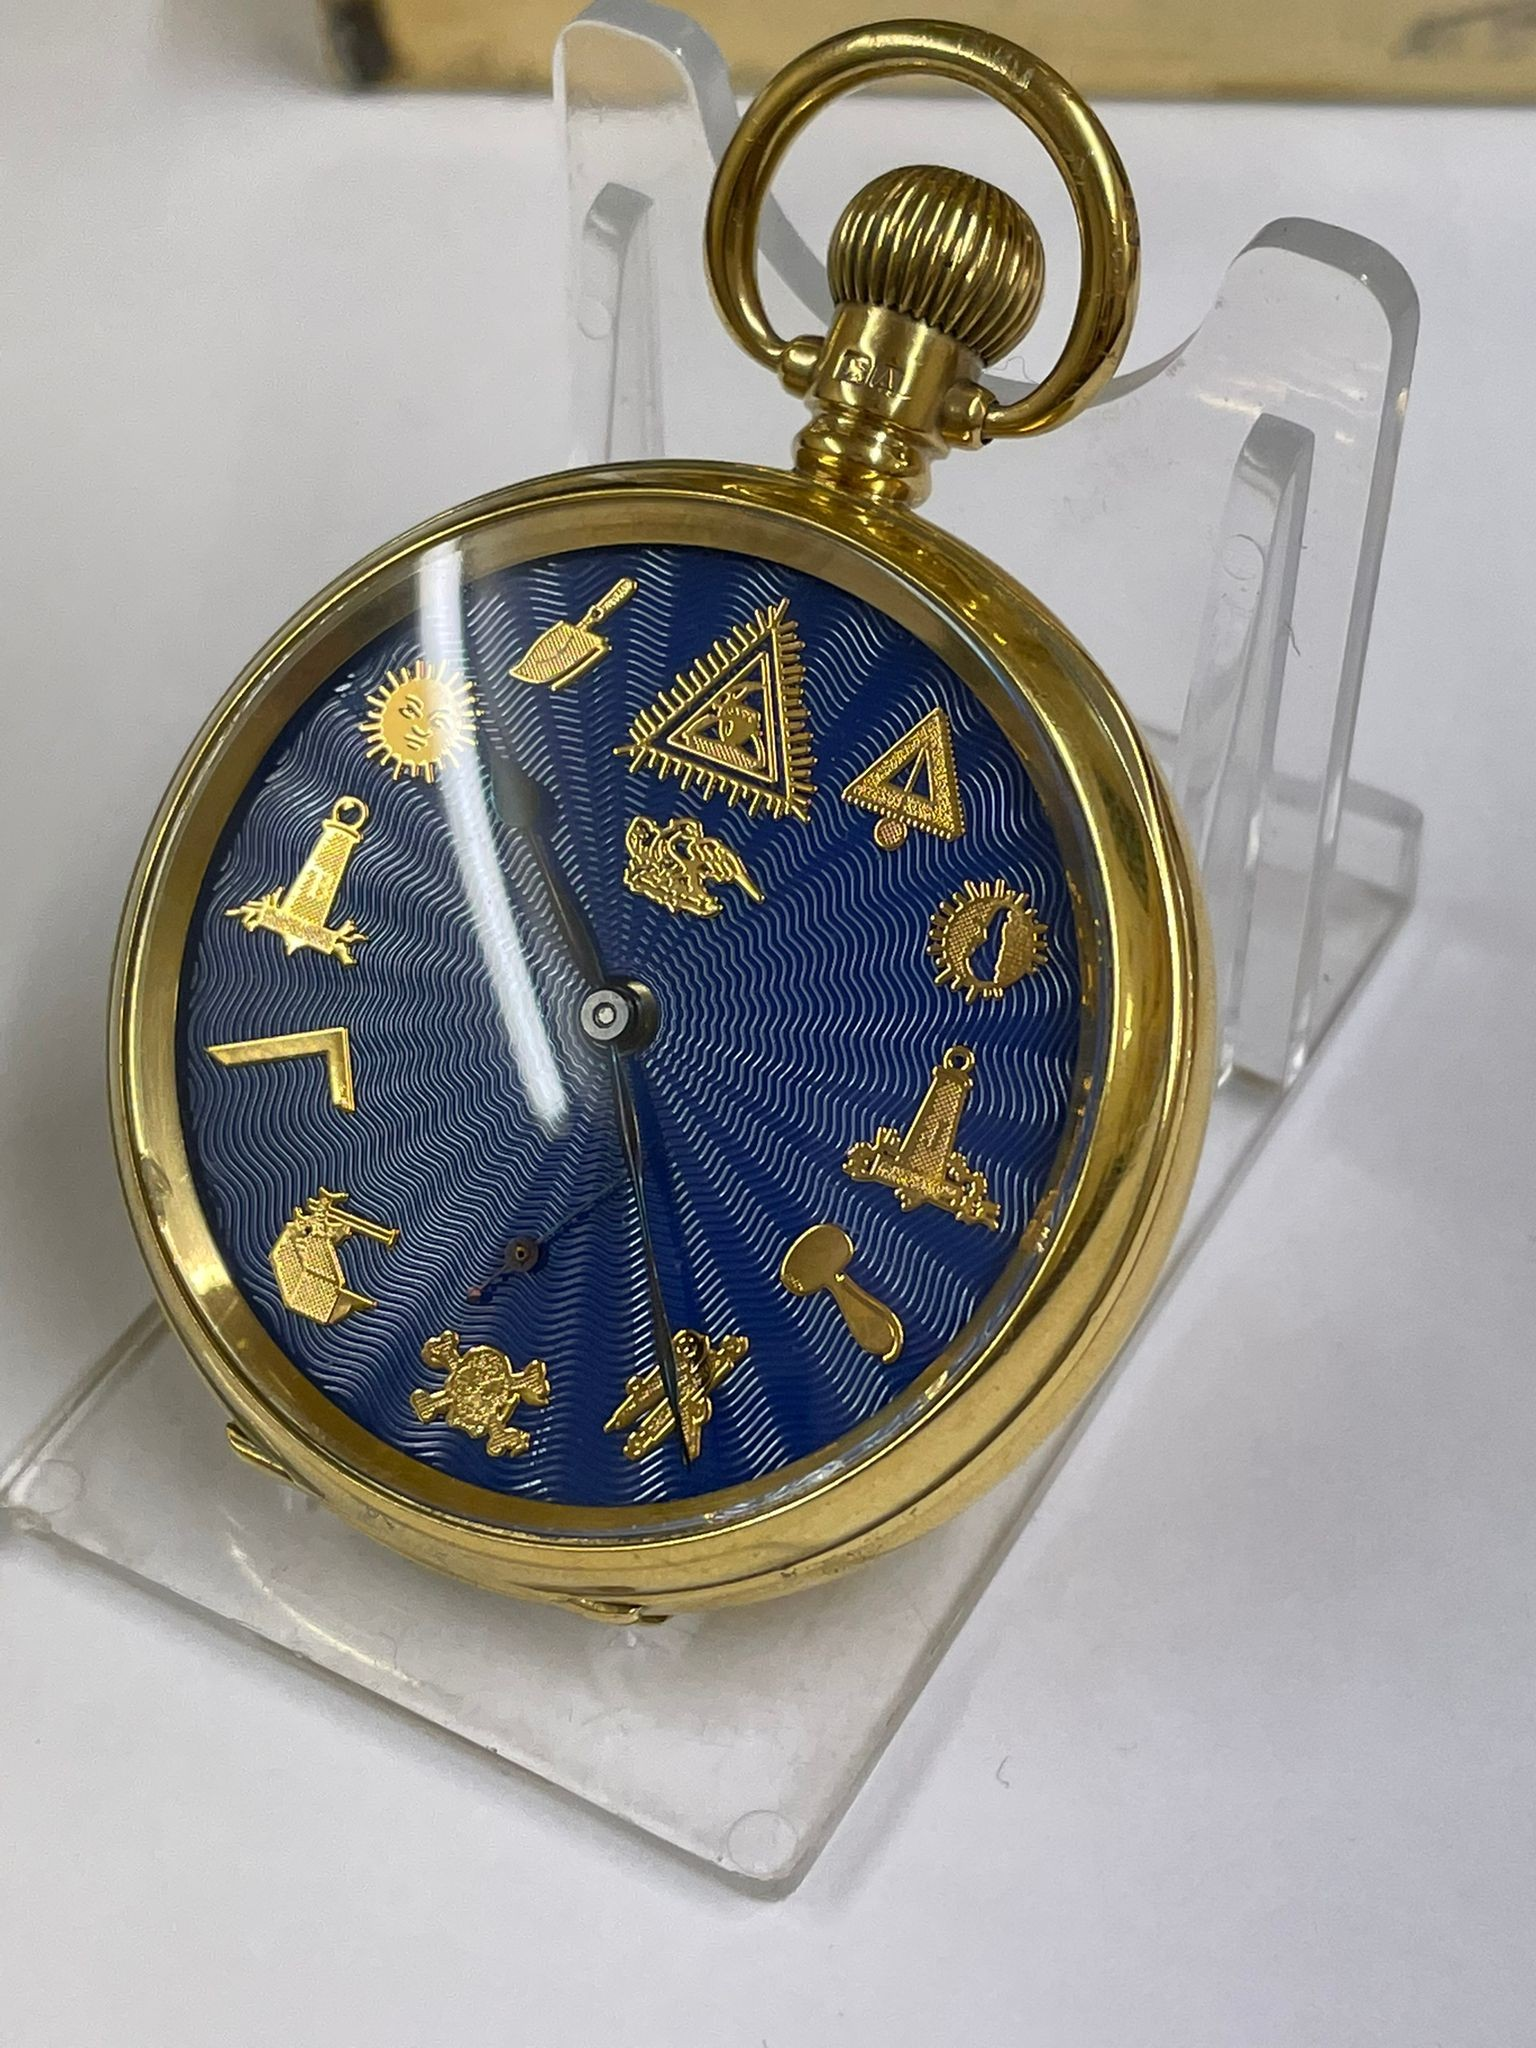 Vintage Masonic Rolex pocket watch with stand good condition and good working order but no - Image 15 of 21